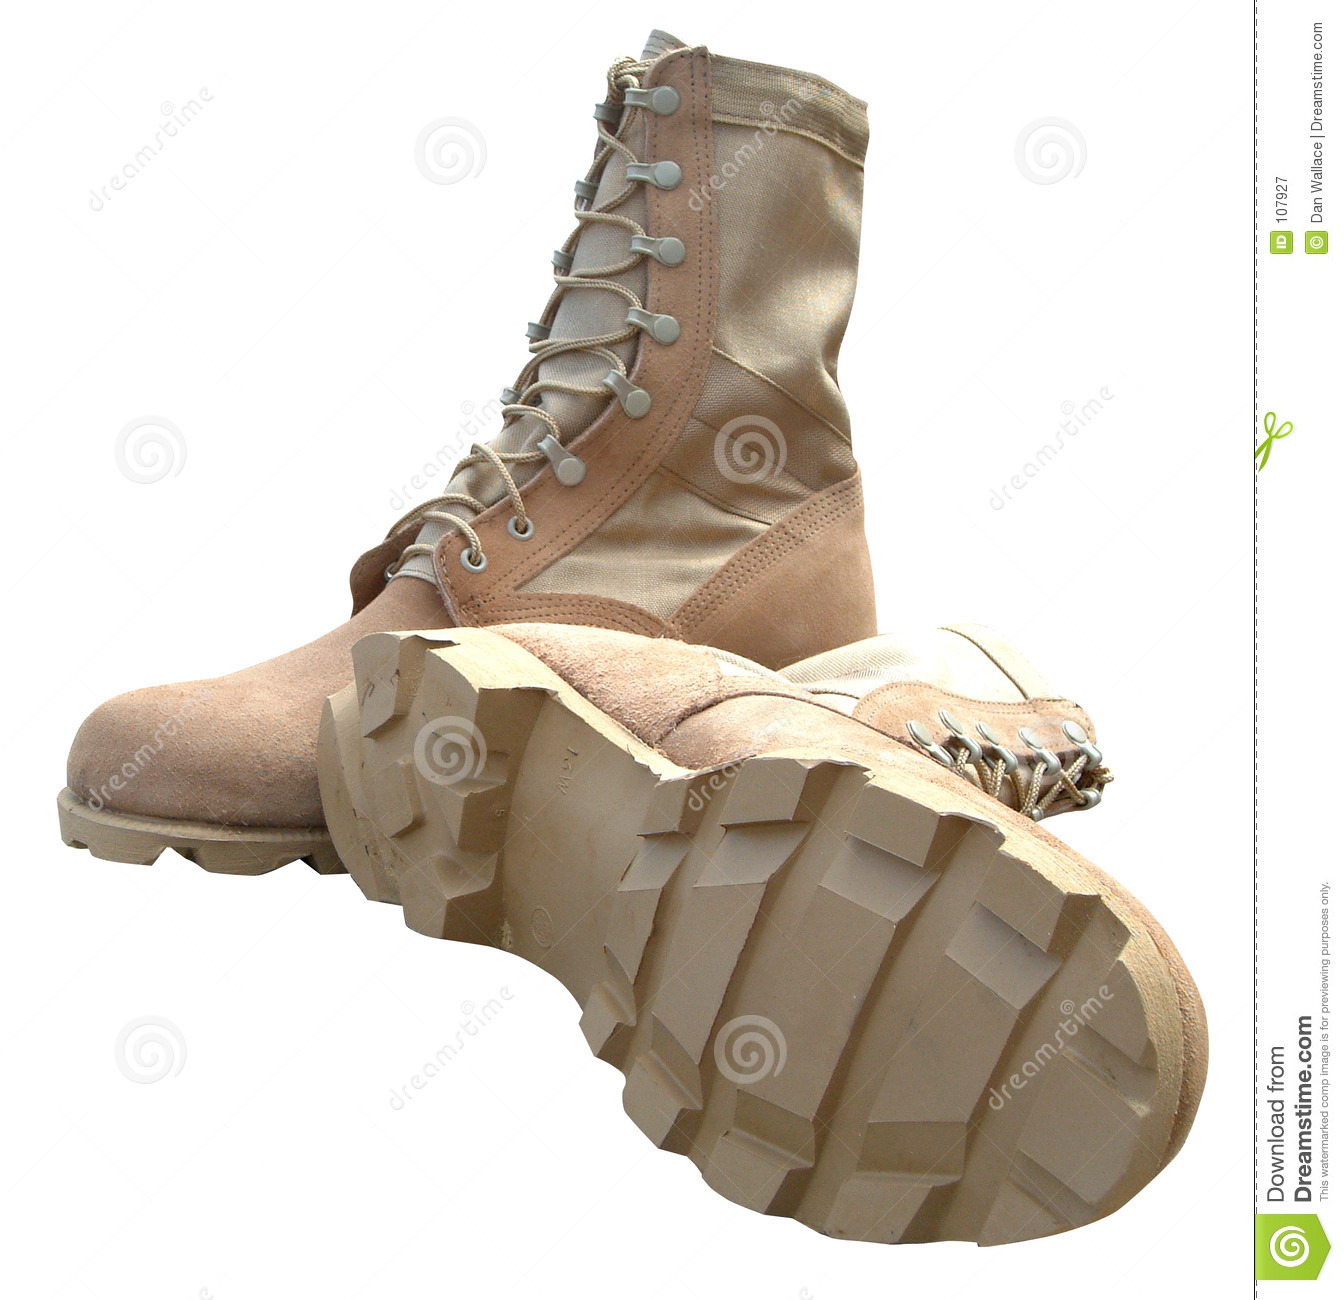 clipart of military boots - photo #48